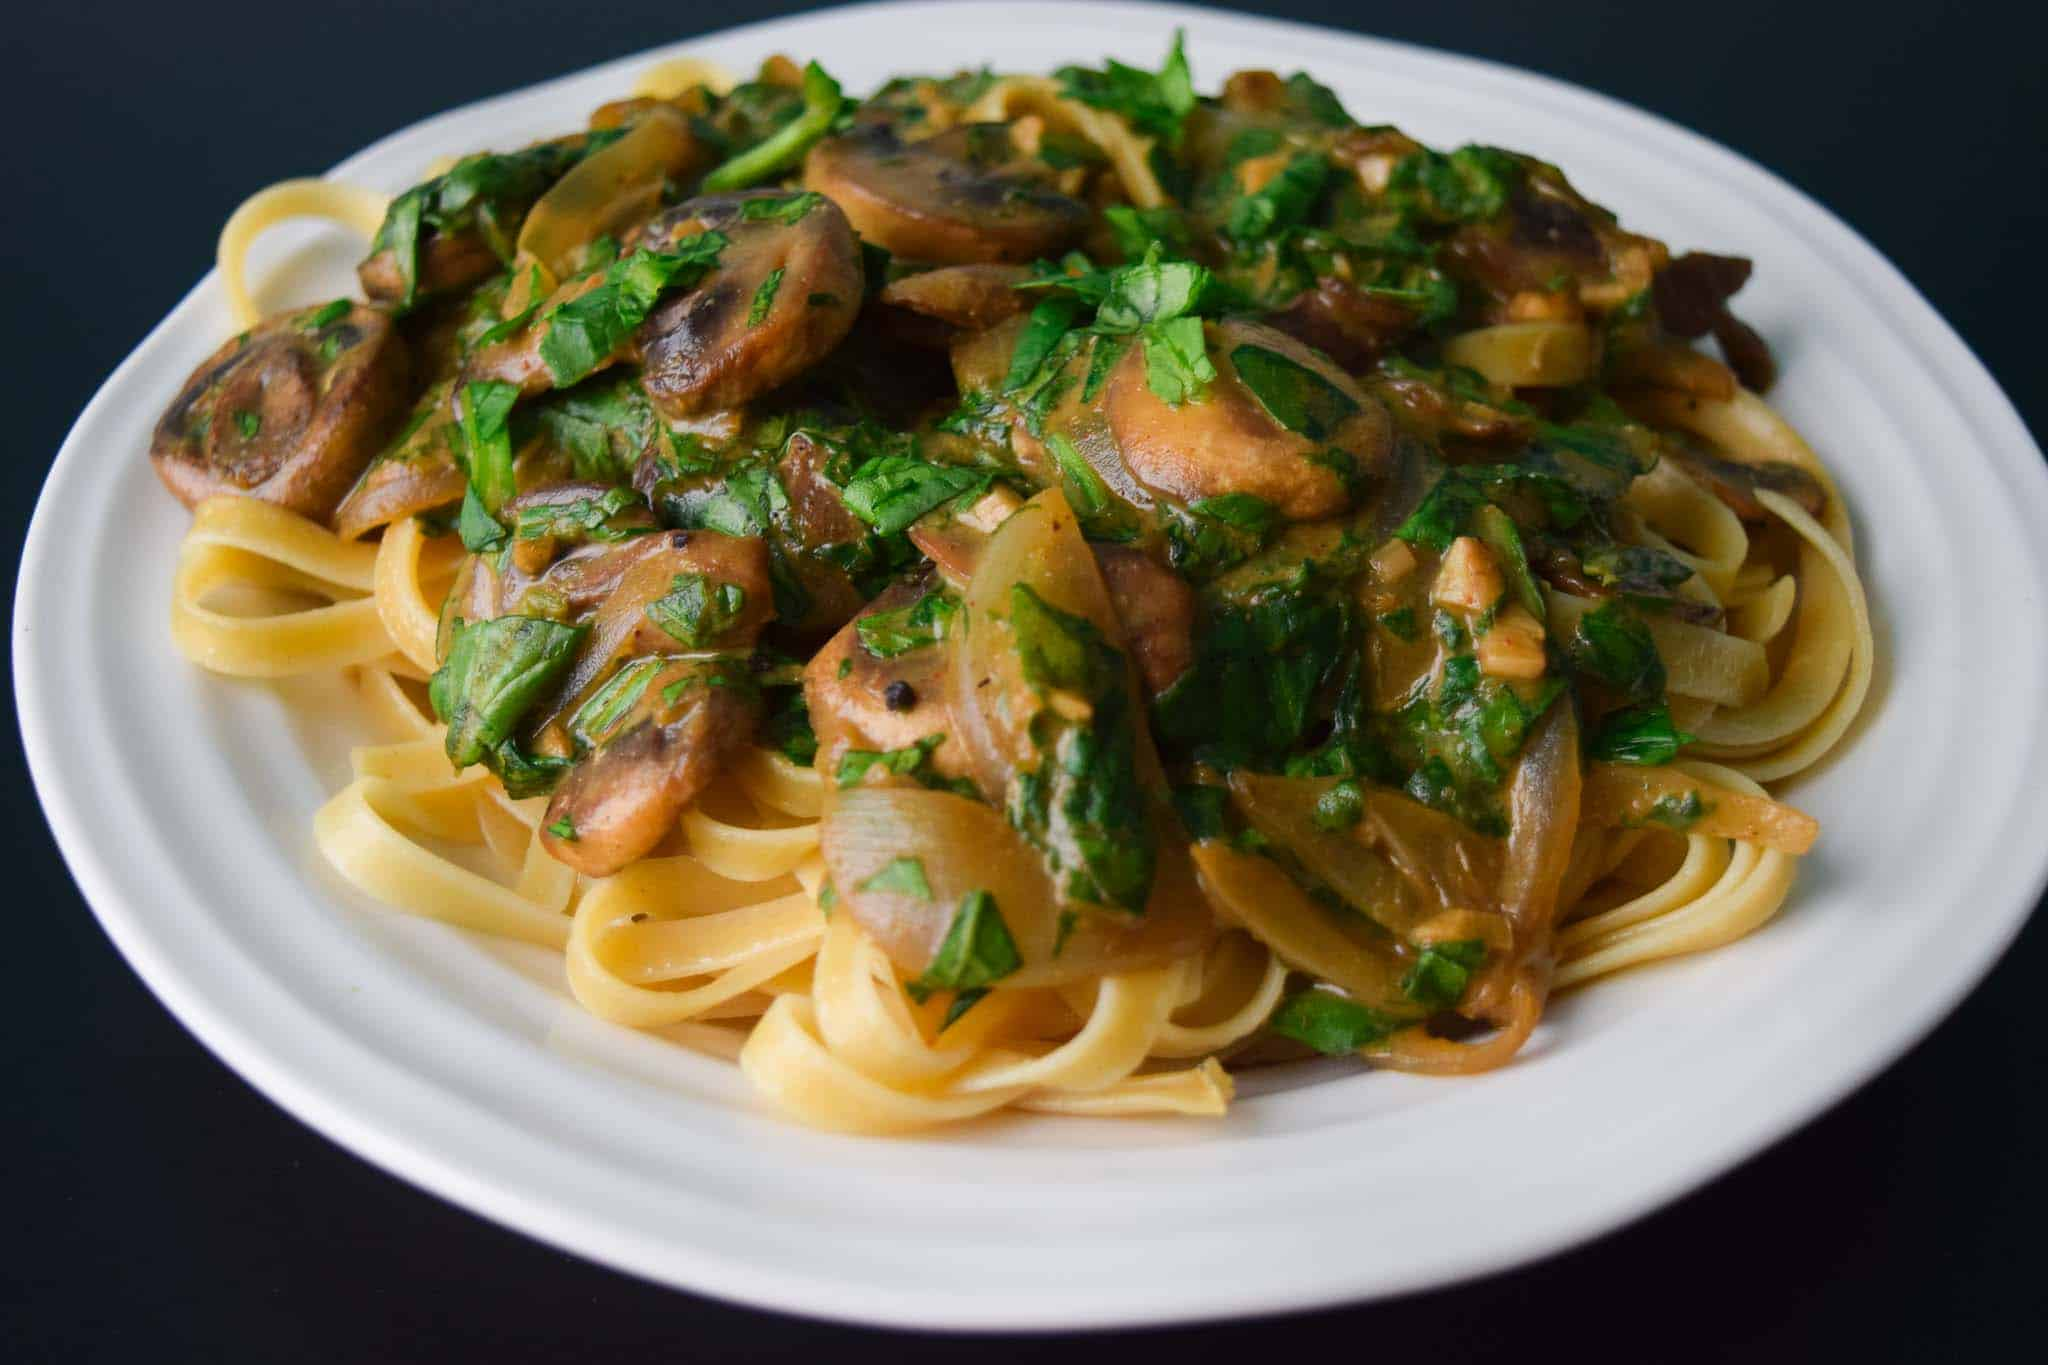 Spinach and Mushroom Fettuccine